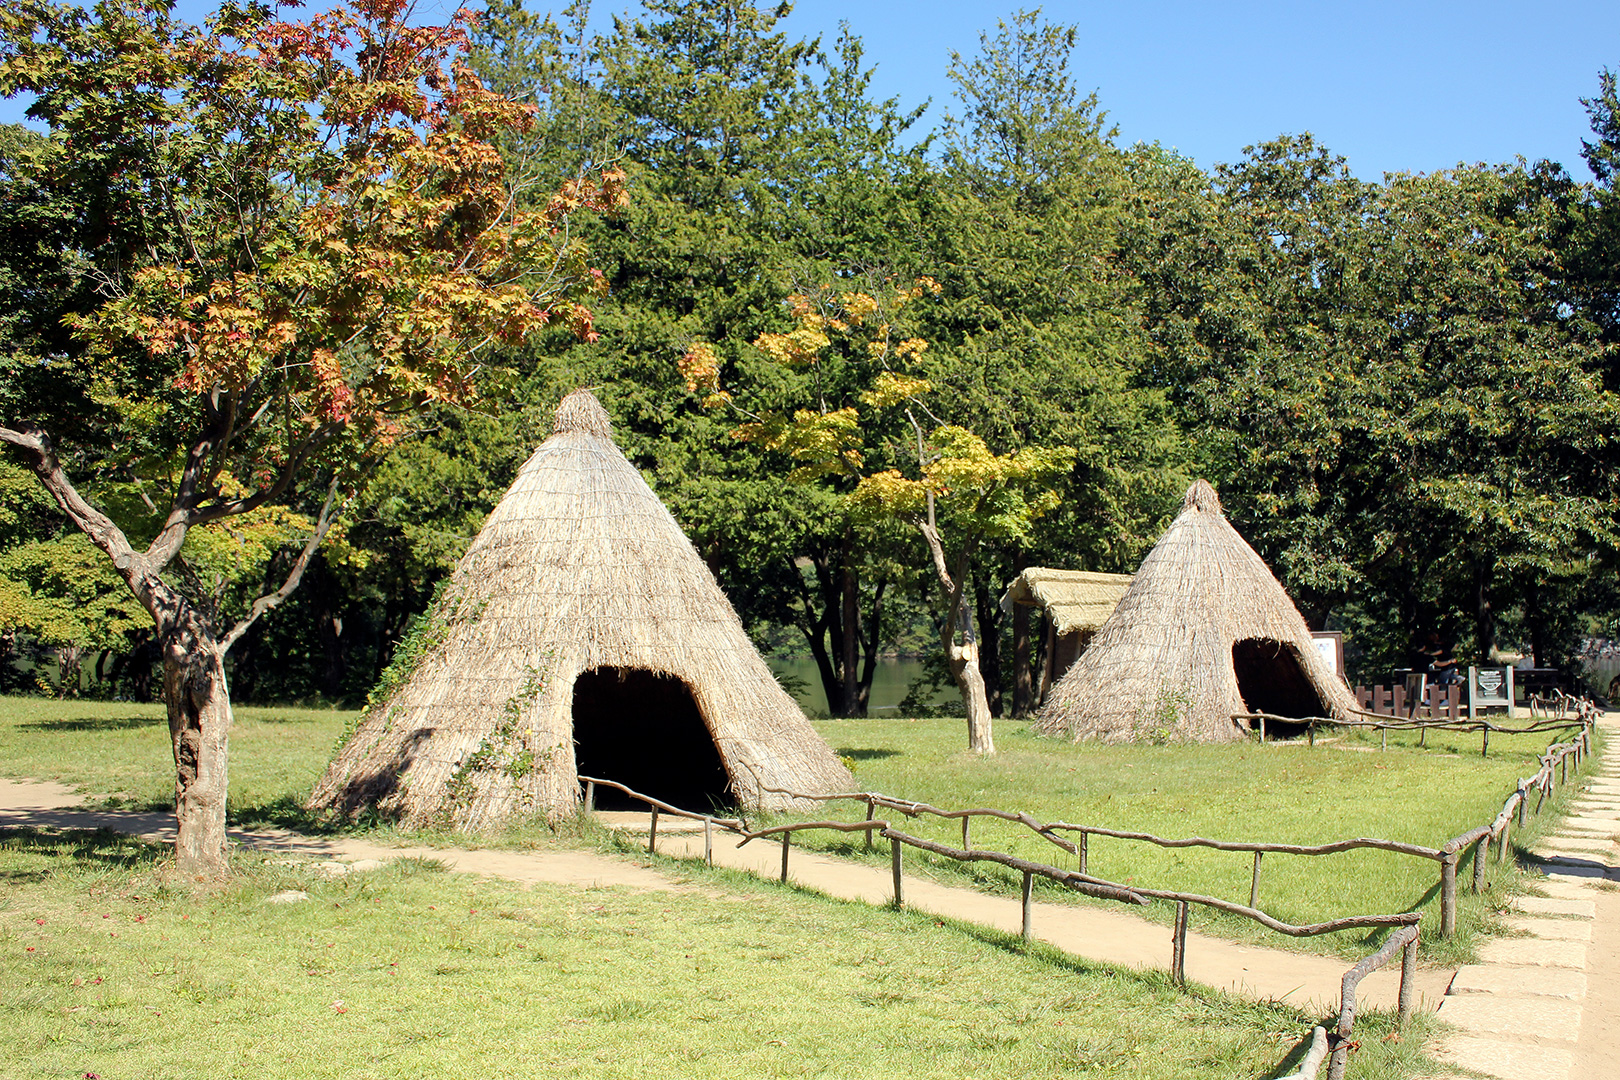 Archaeological evidence of ancient human tribal life was found on Nami Island. These are replicas of the type of straw dome housing that was used for housing.